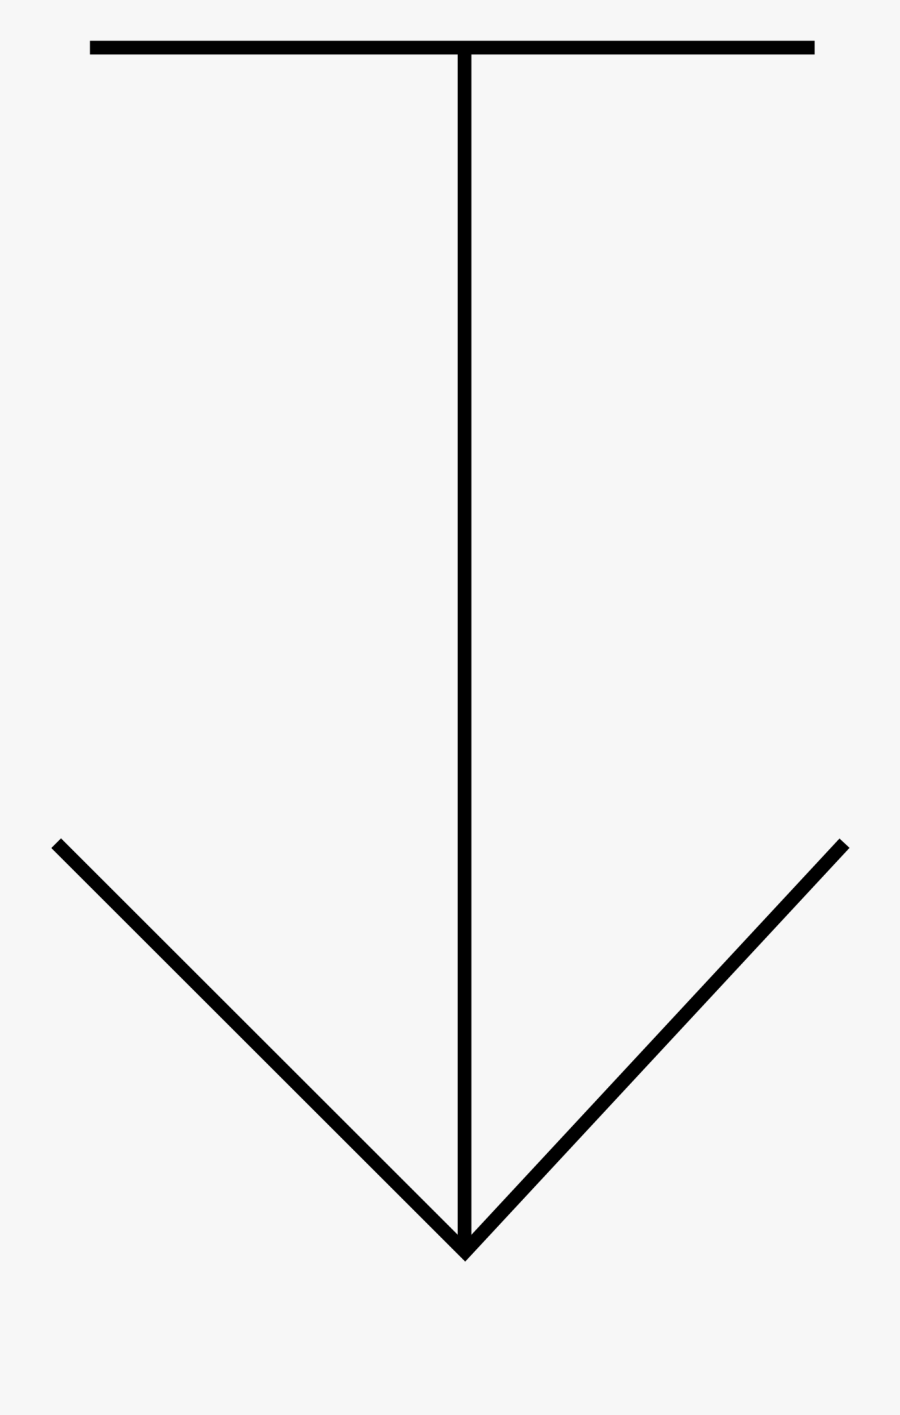 Engineering Drawing Symbol For Depth, Transparent Clipart